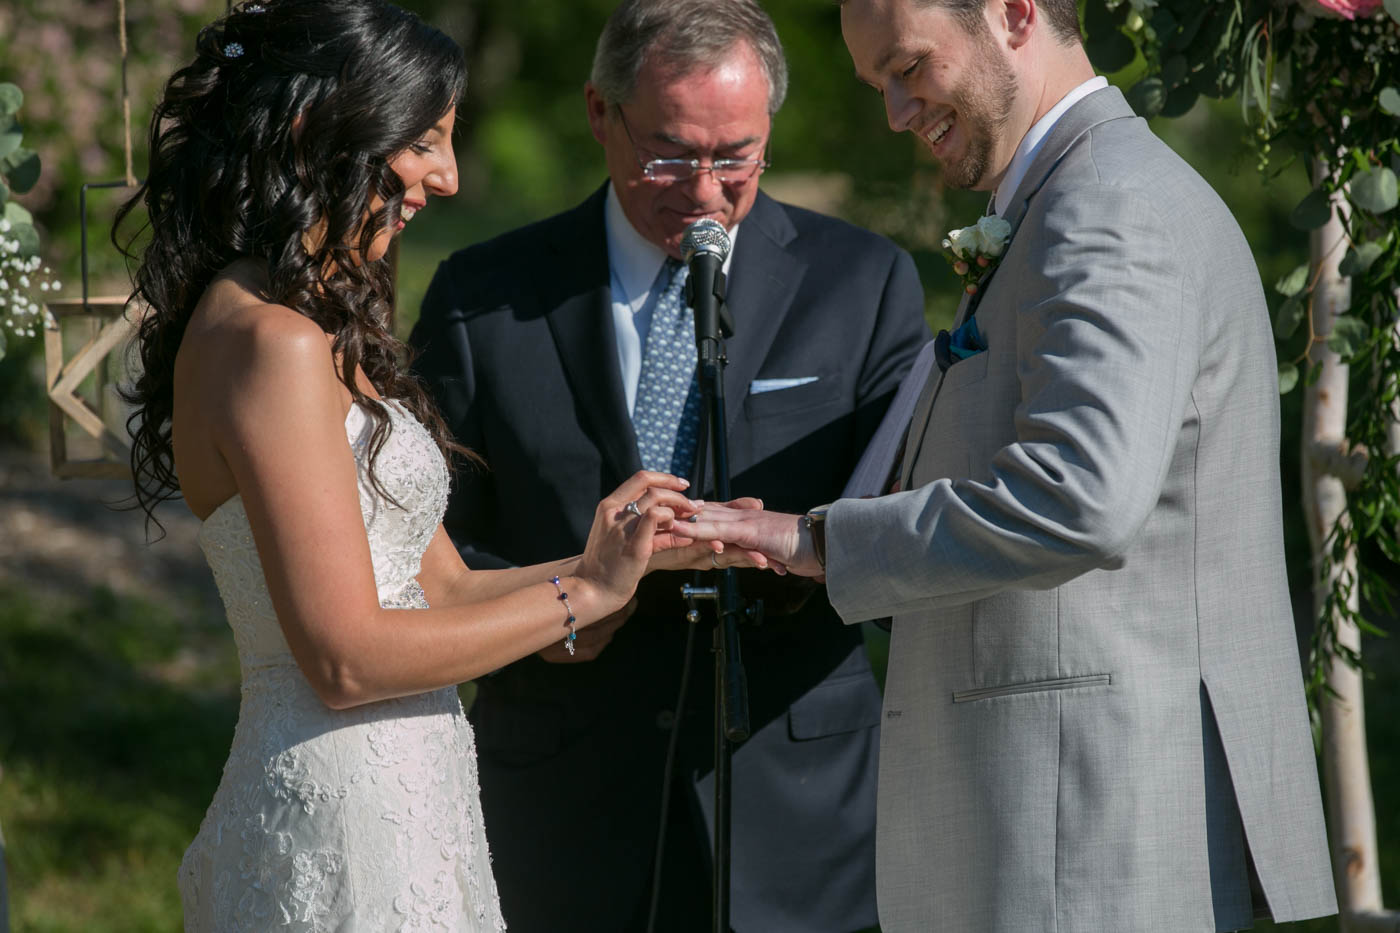 bride-placing-ring-on-grooms-finger-summer-wedding